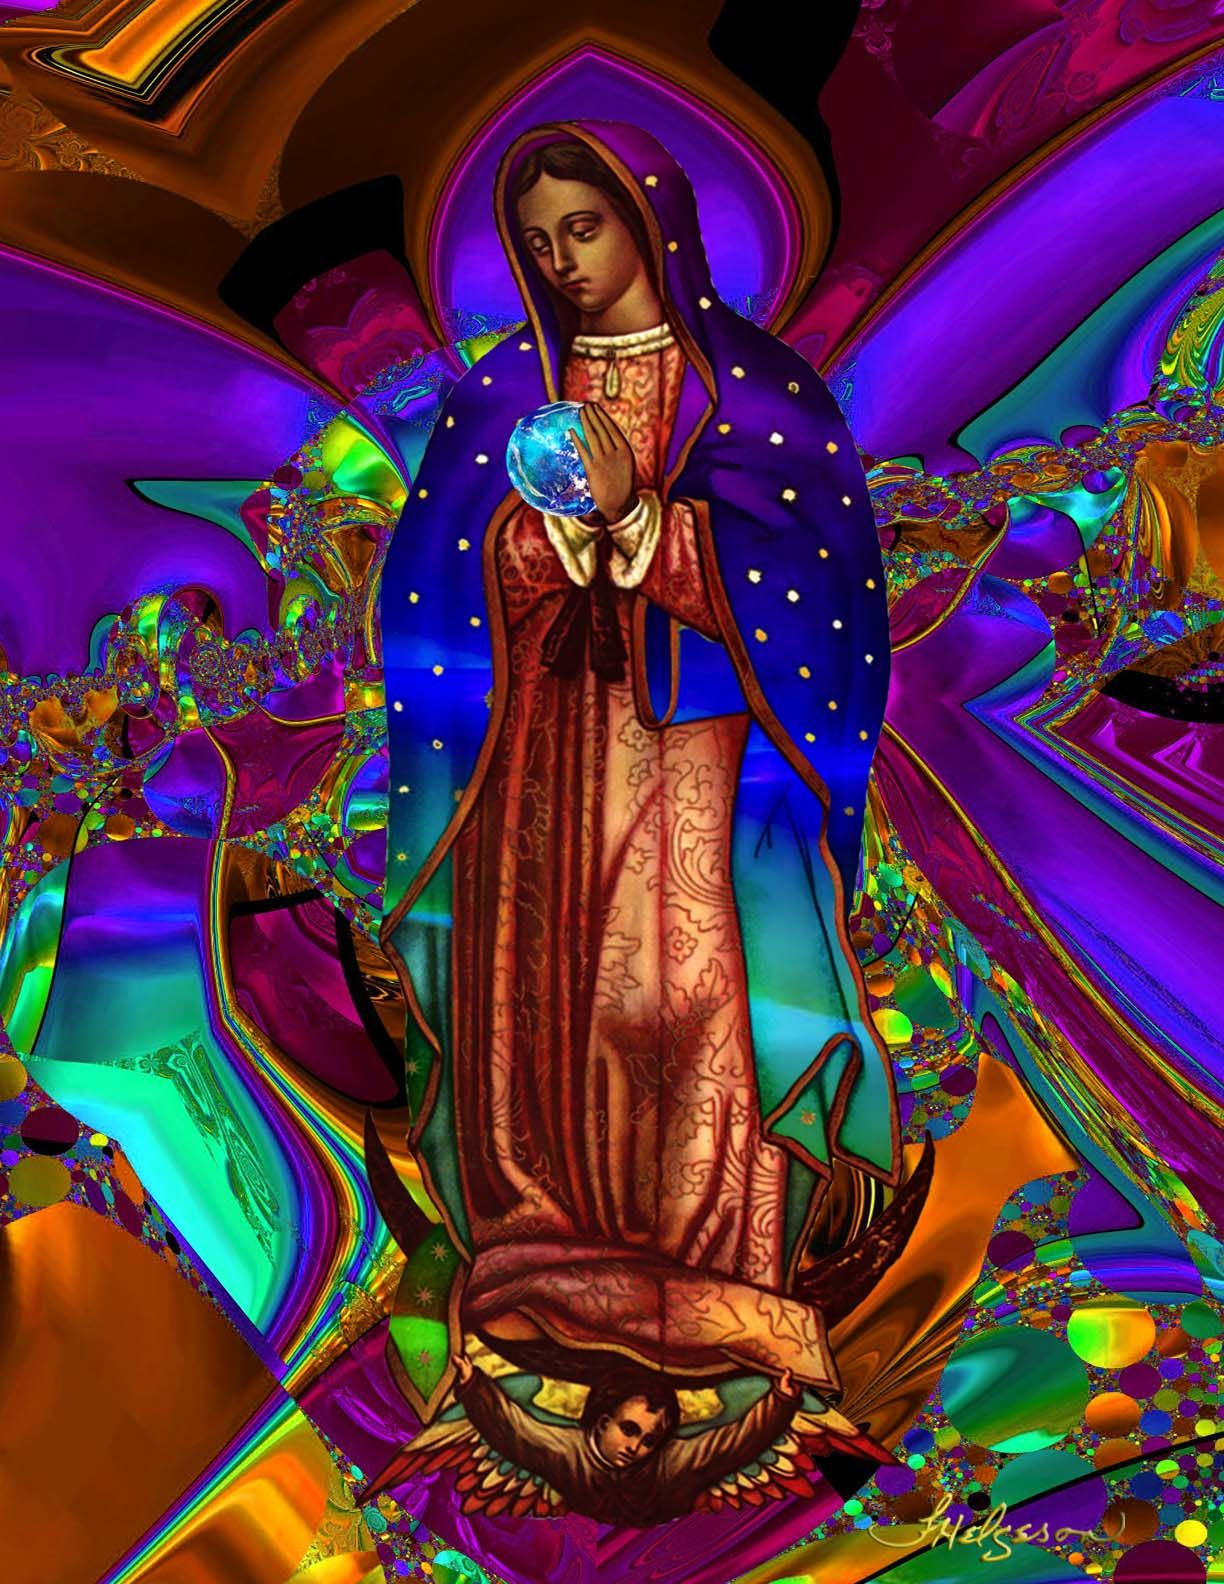 Our Lady of Guadalupe Virgin of Guadalupe Queen of the